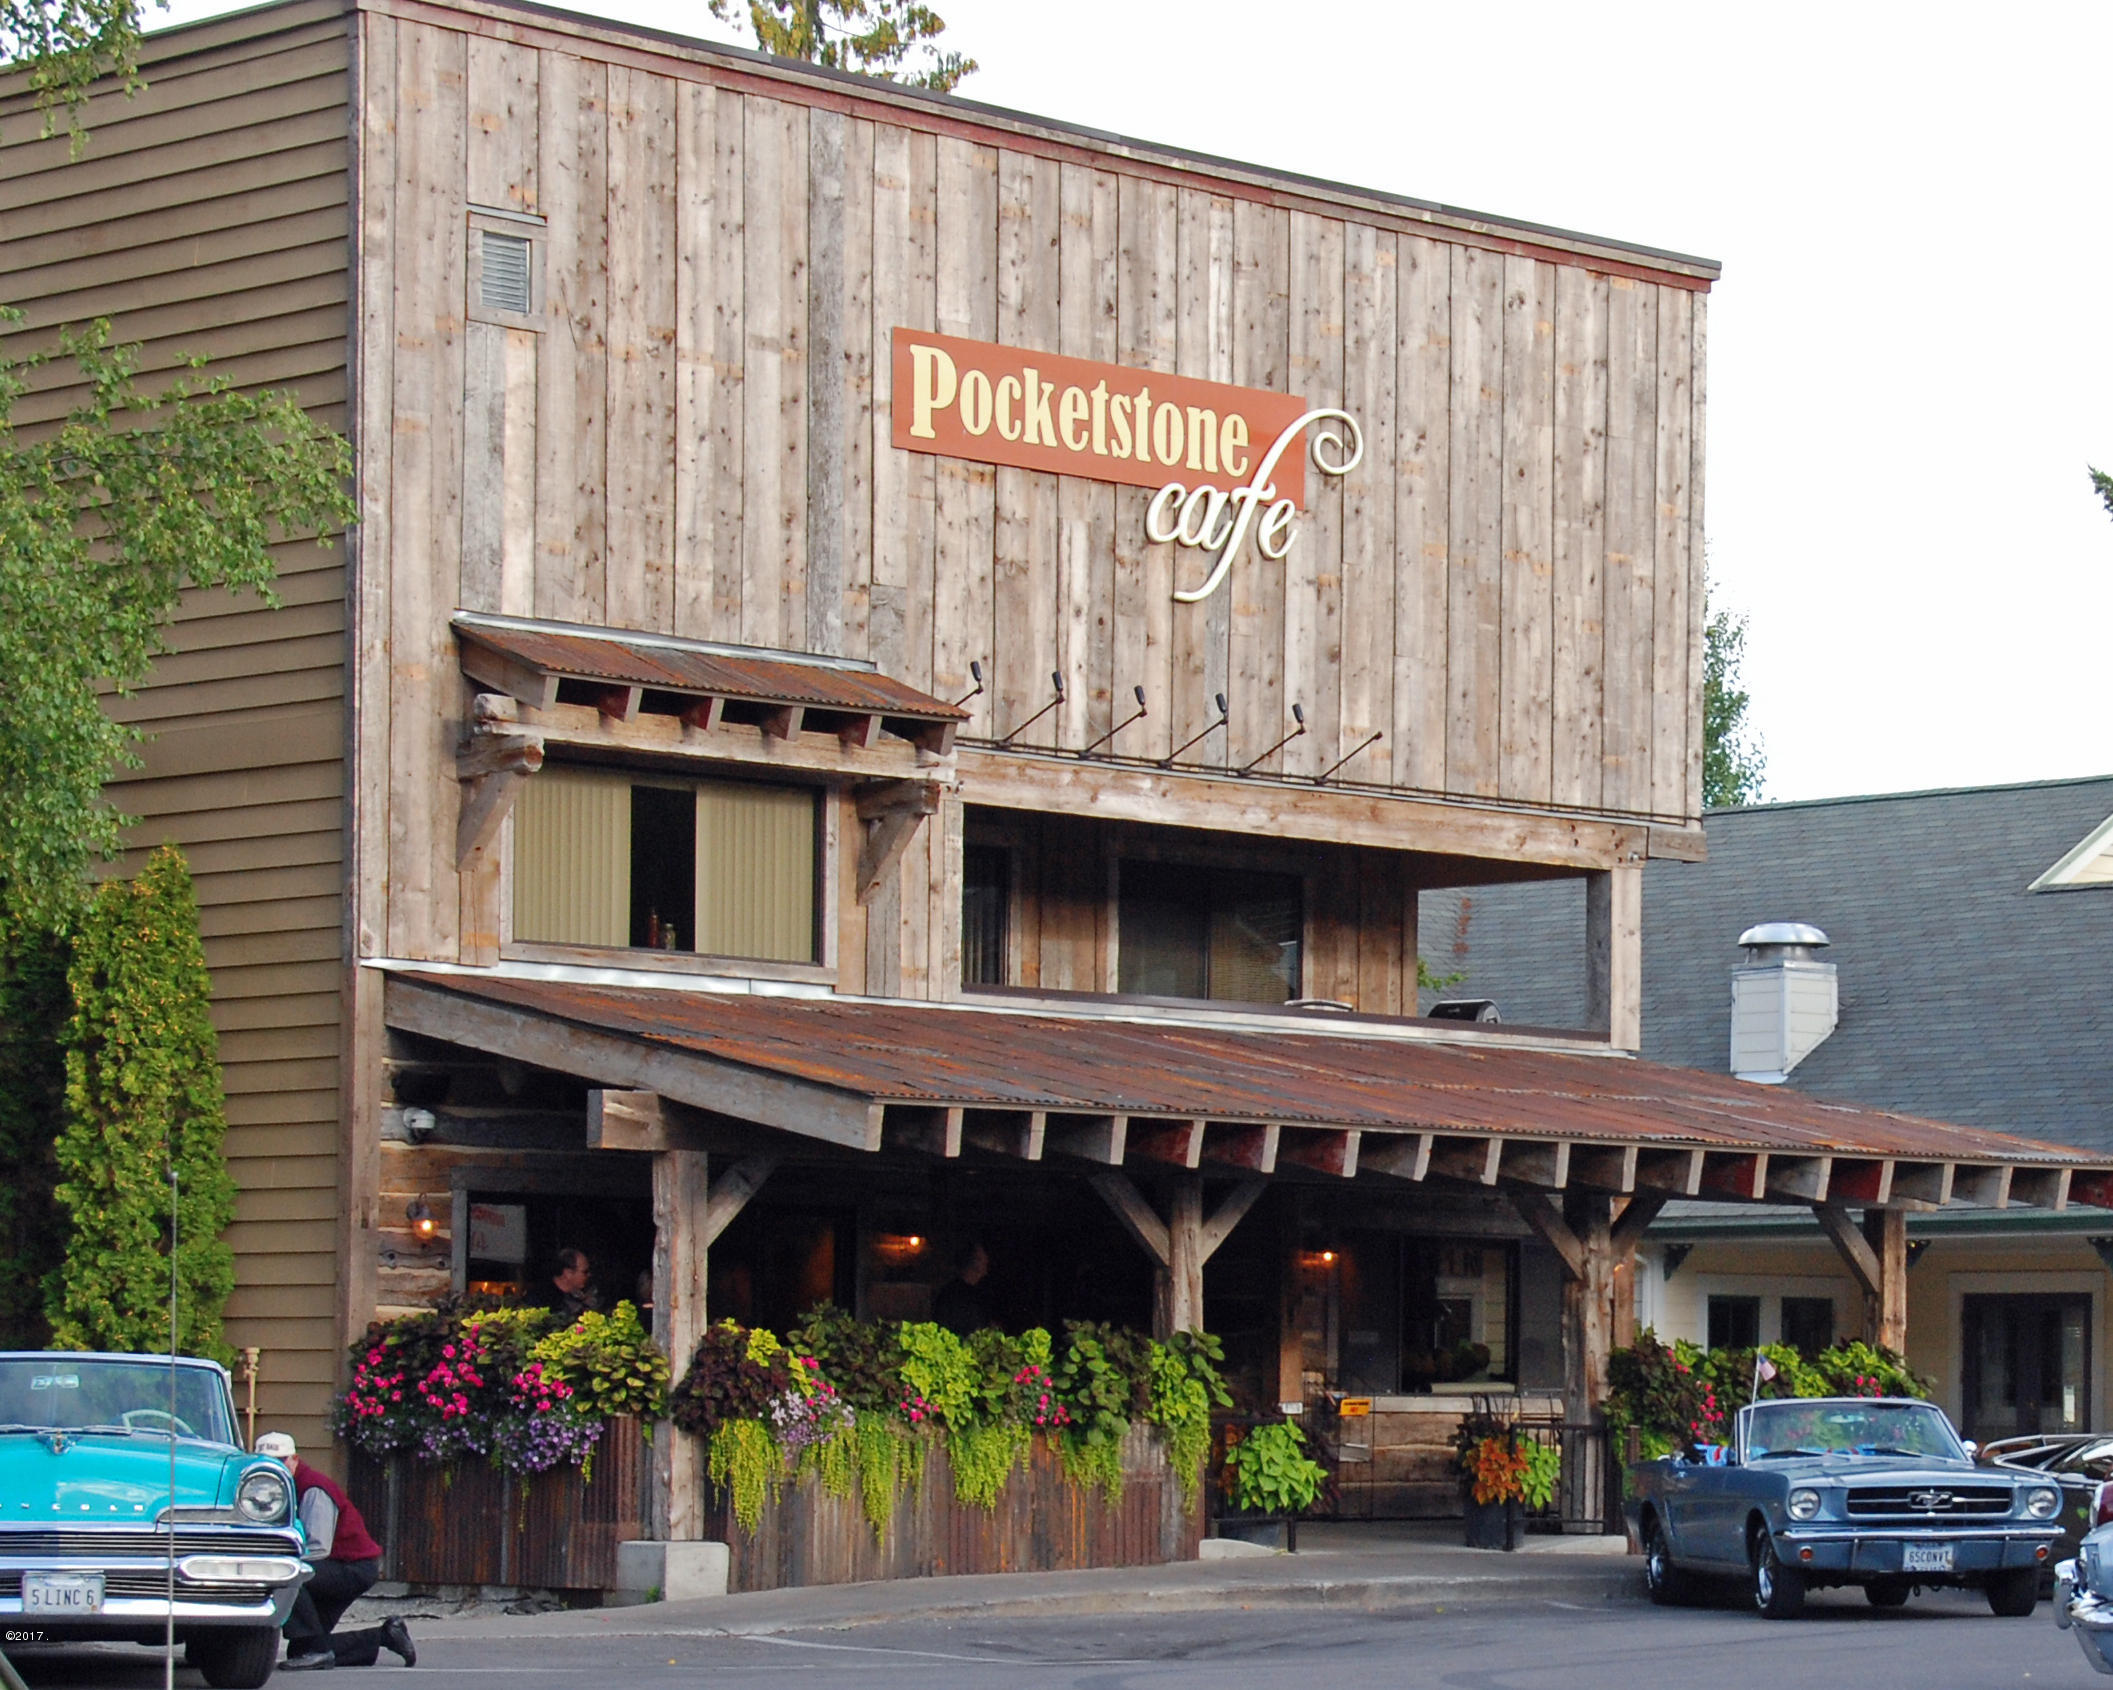 Pocketstone Cafe